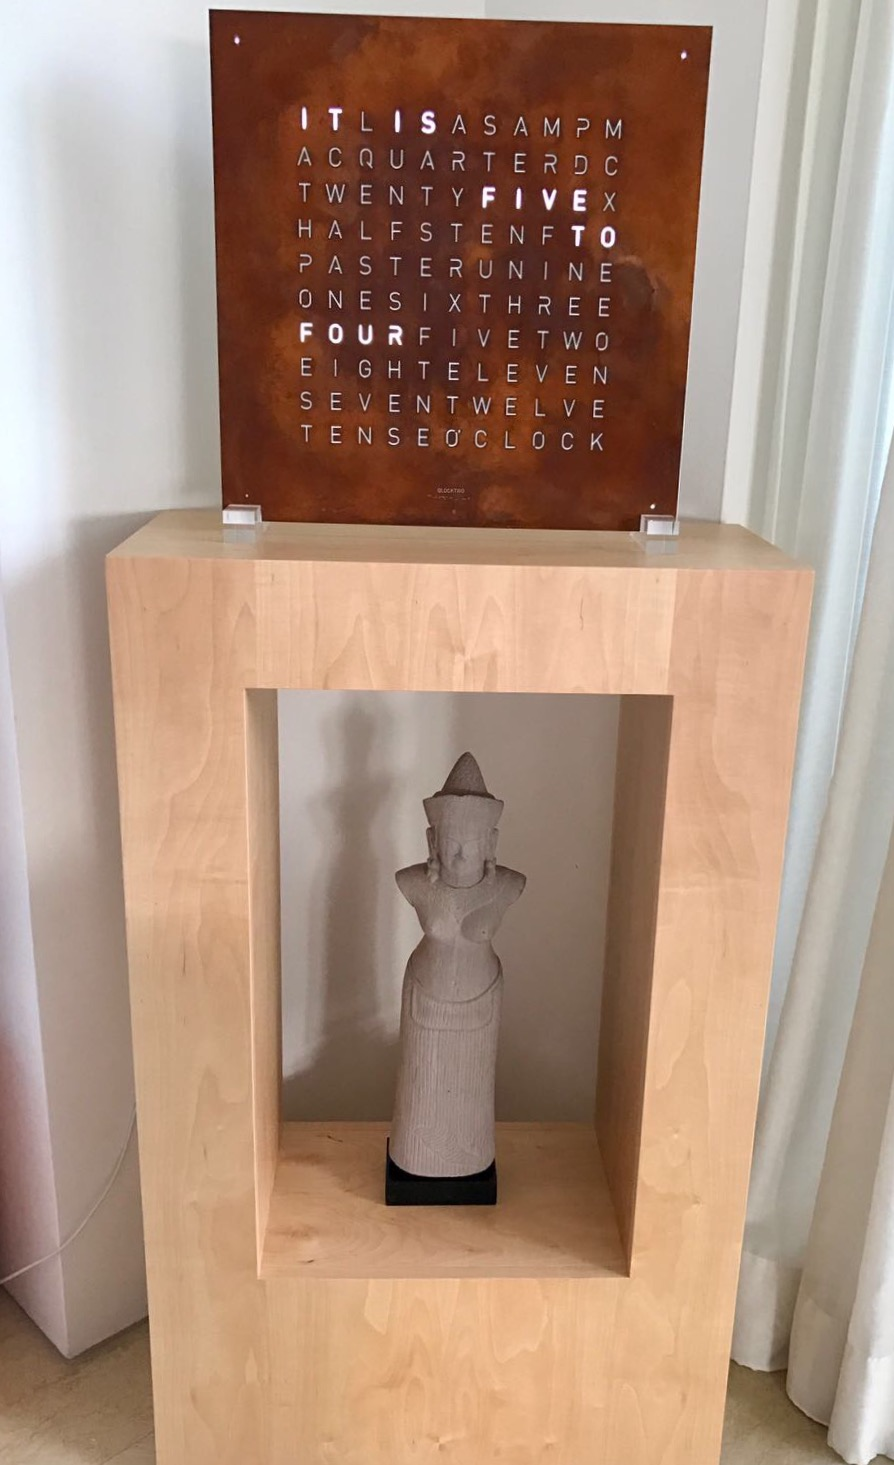 A solid Maple wood display stand to bring out the copper tone for the Swiss made word clock, that also houses a traditional Cambodian statue at the bottom.